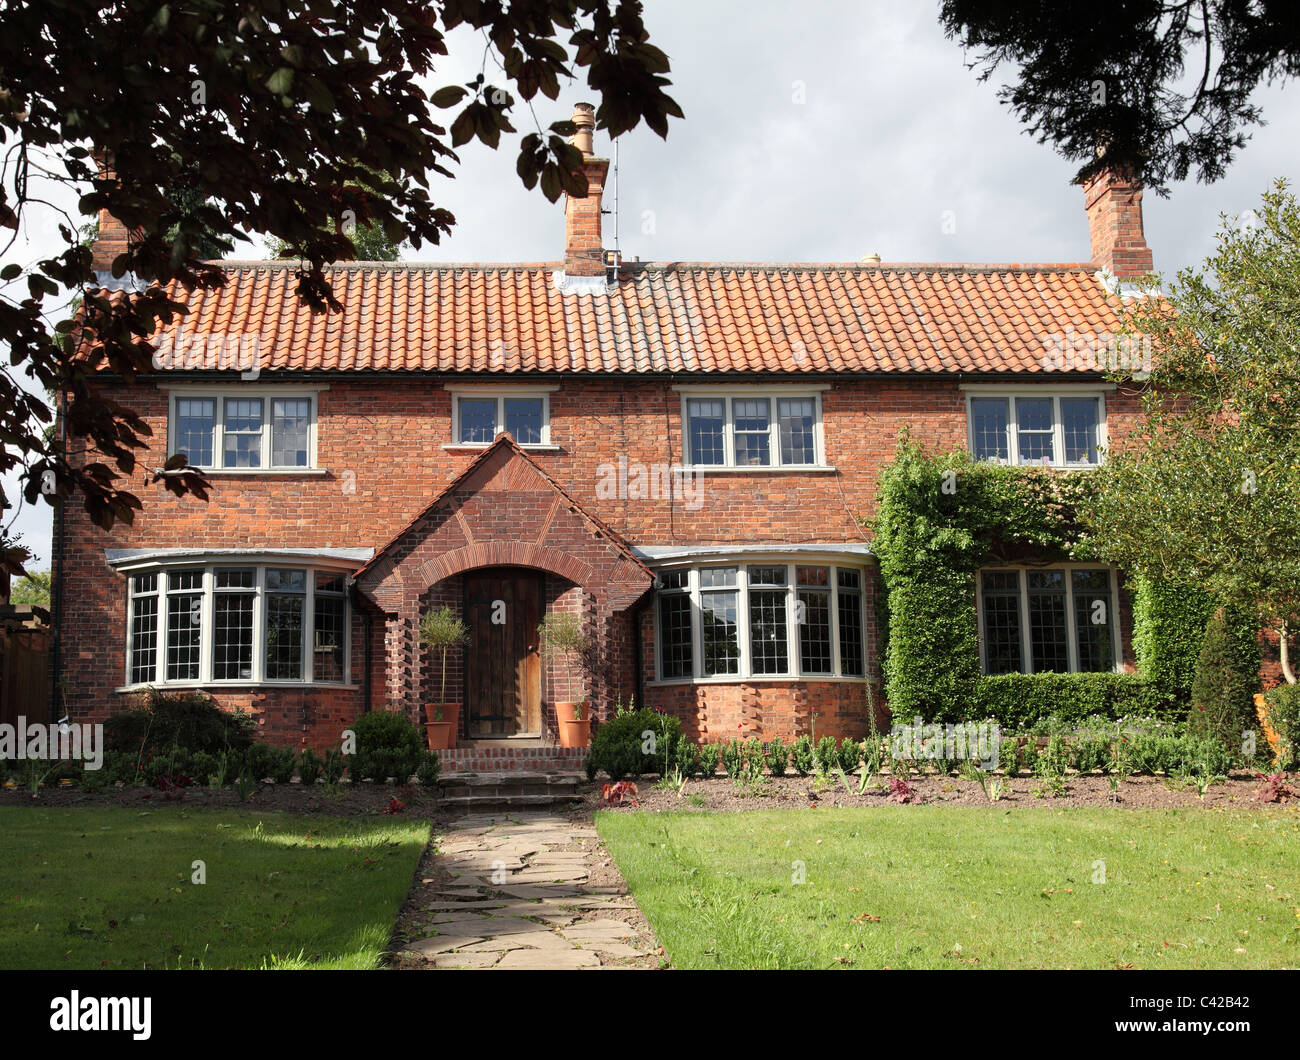 A large detached house in the U.K. Stock Photo